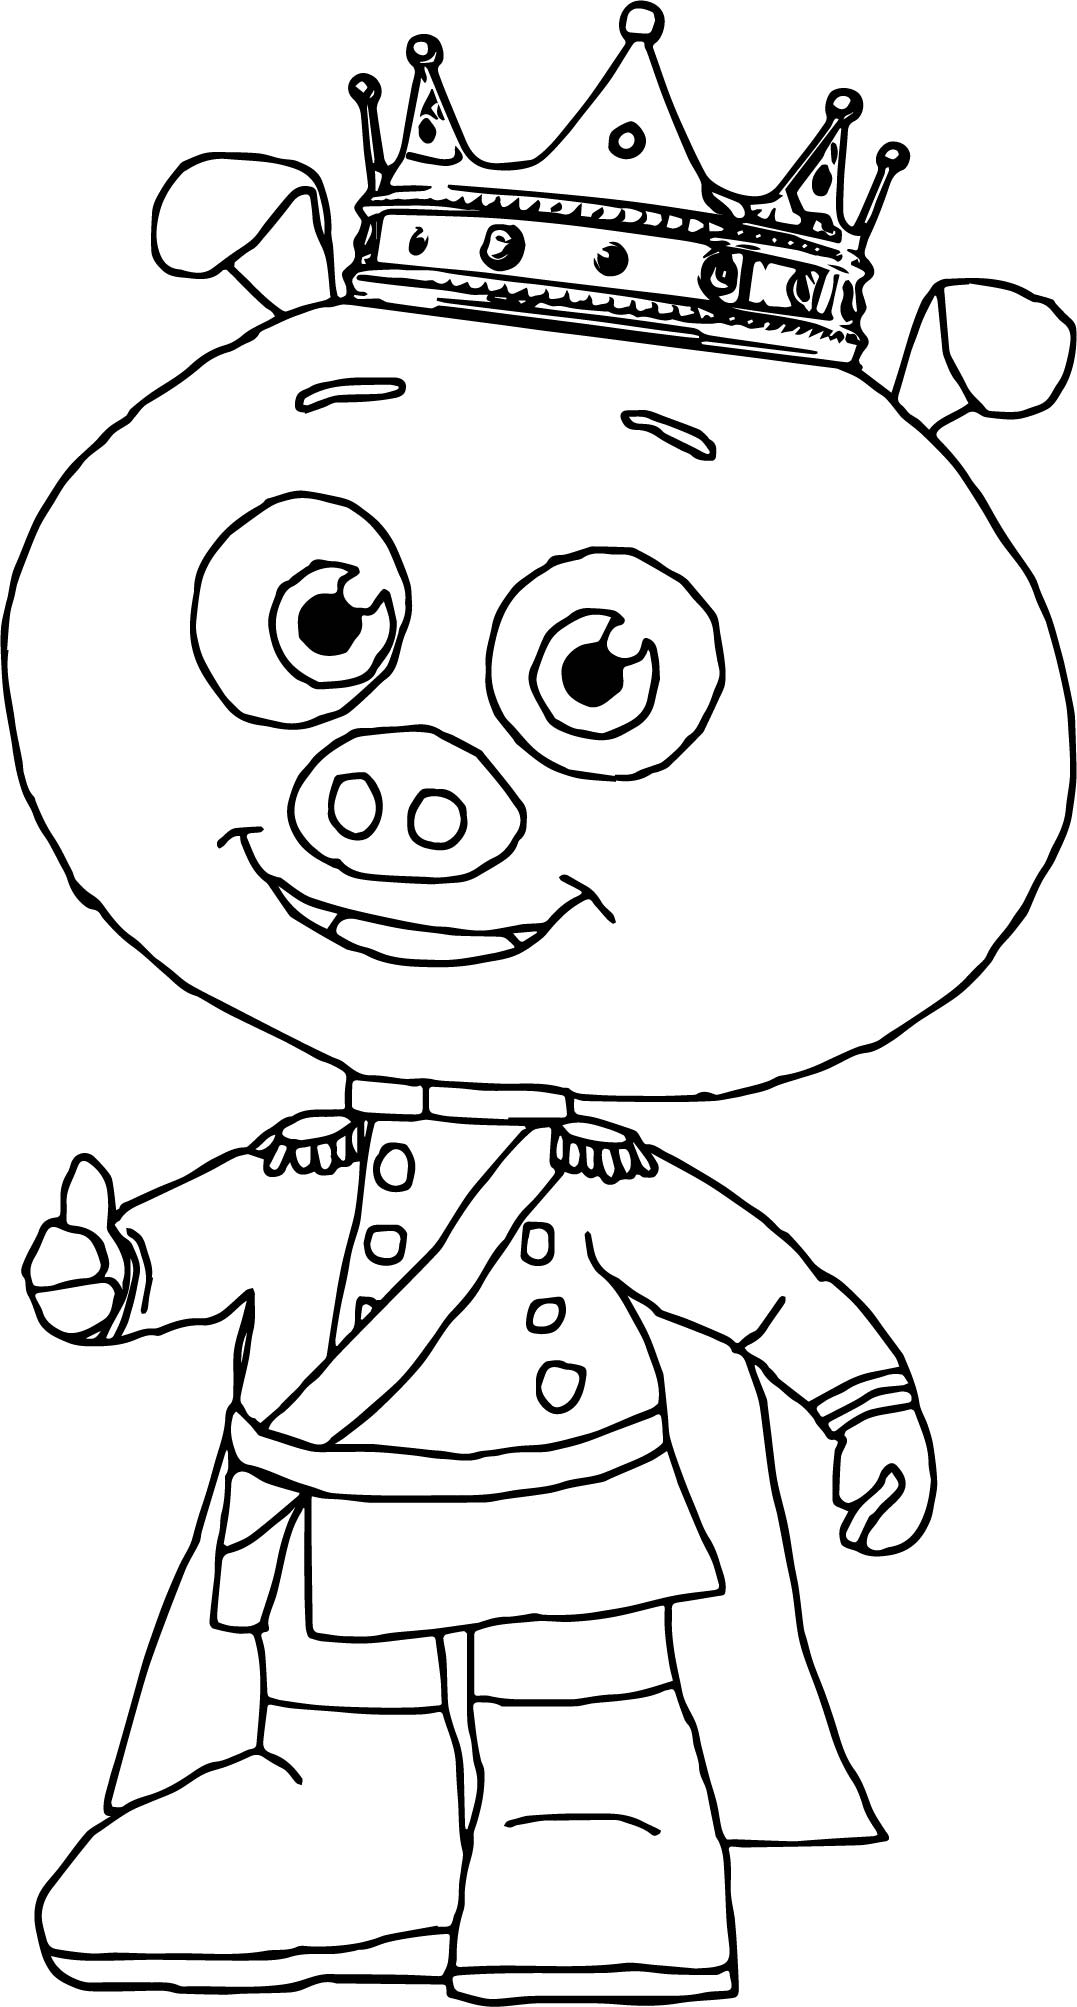 prince pig super why coloring page